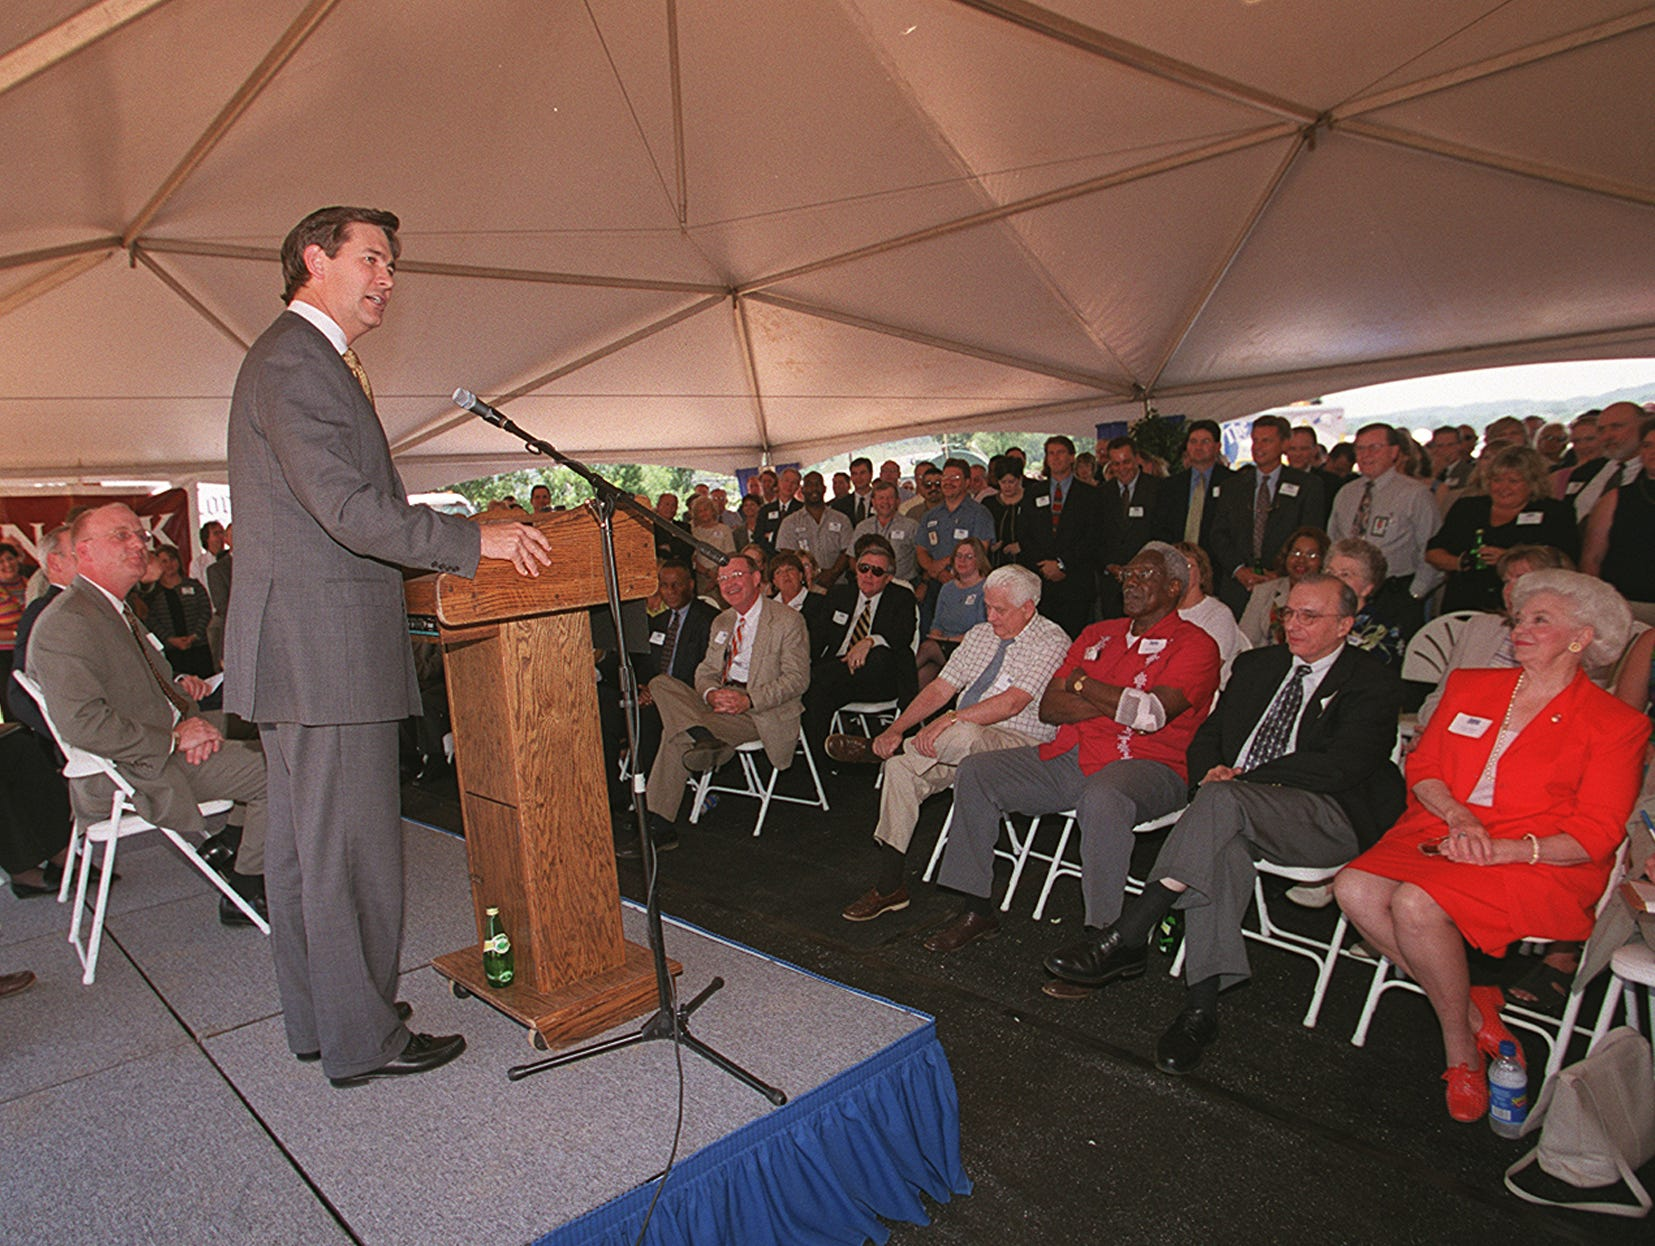 In a May 17, 2001, photograph, E.W. Scripps Co. President and CEO Kenneth Lowe delivers his remarks during groundbreaking ceremonies for the $50 million Knoxville News-Sentinel building.